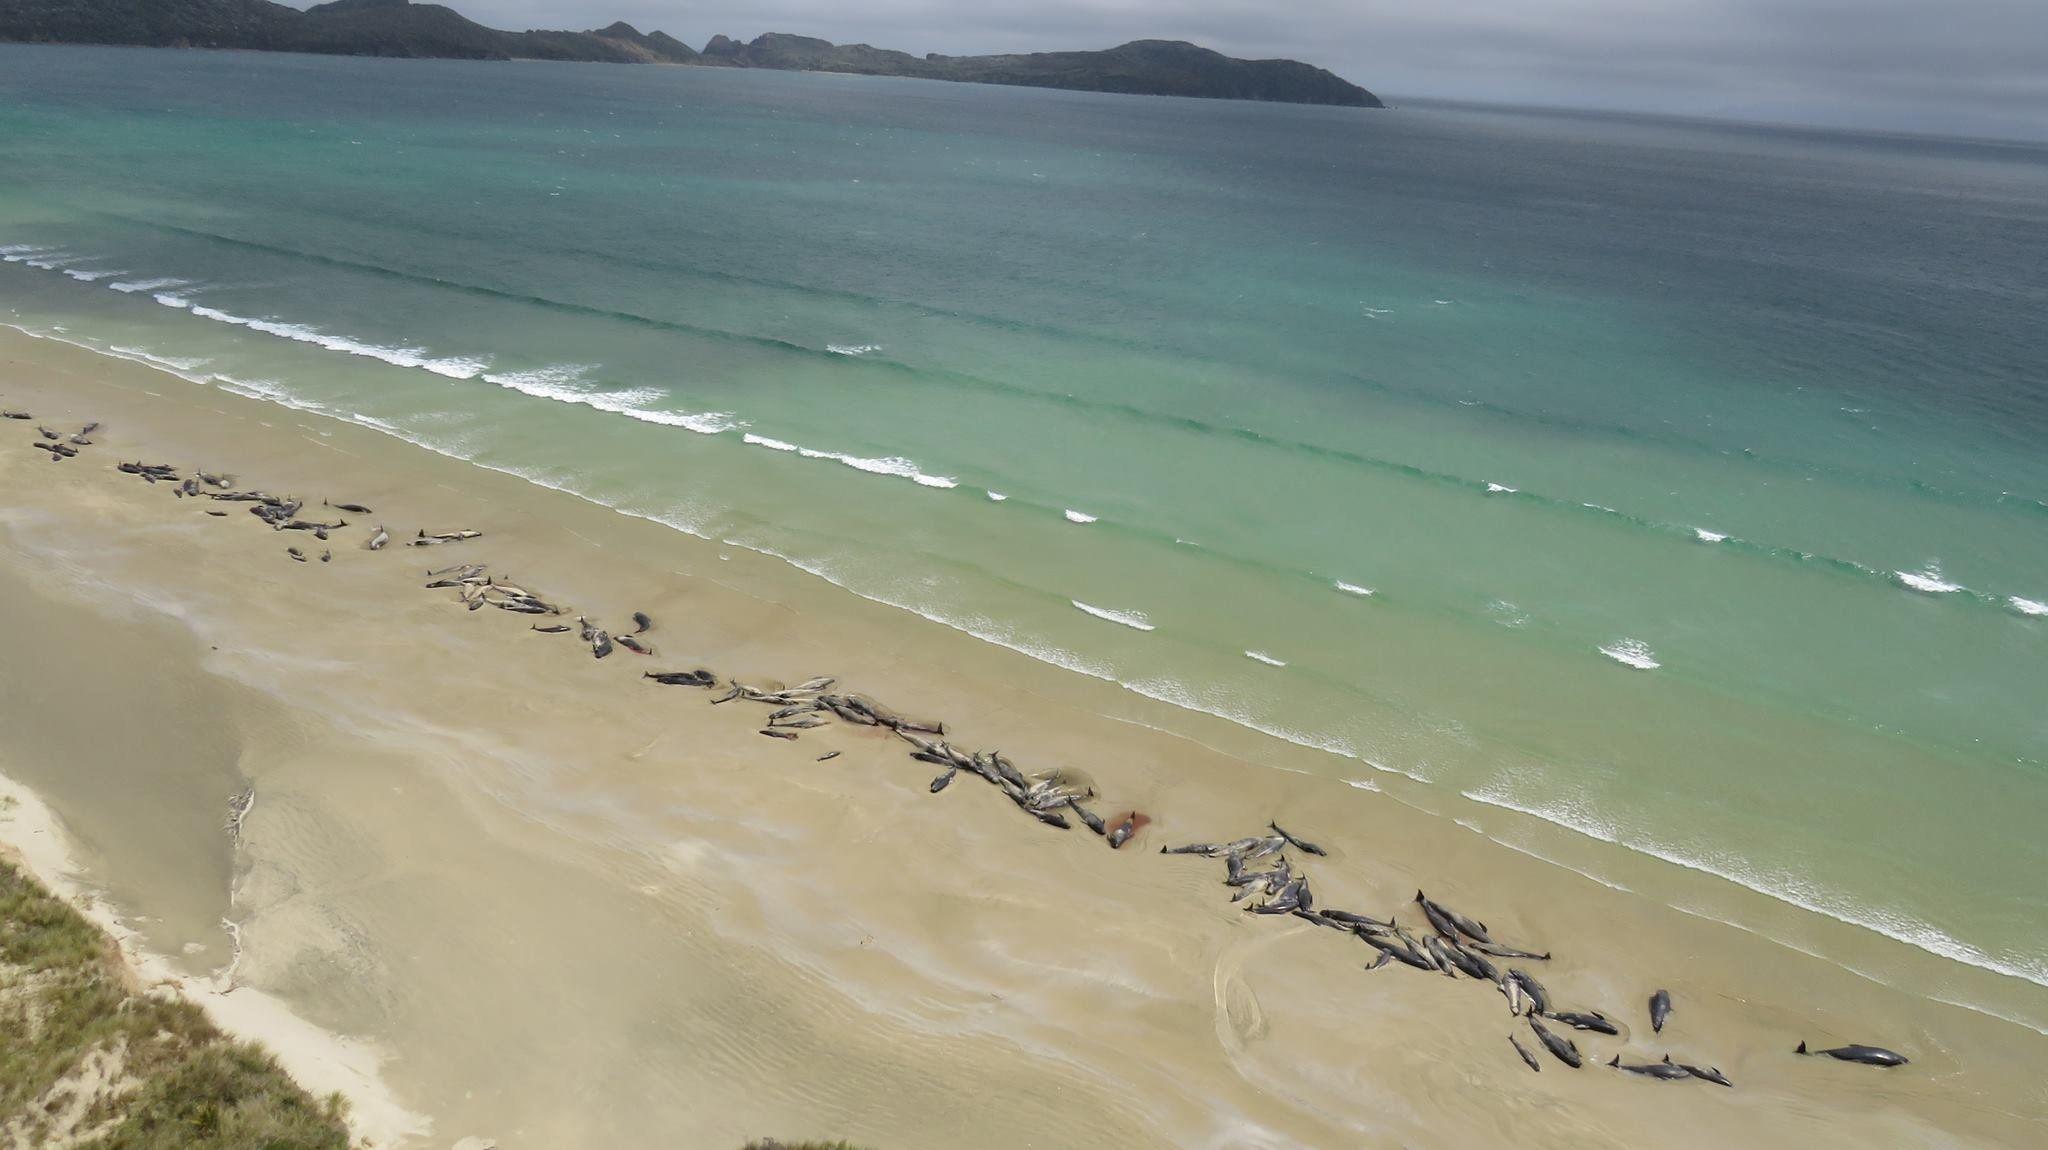 Up To 145 Pilot Whales Dead After Mass Stranding On New Zealand